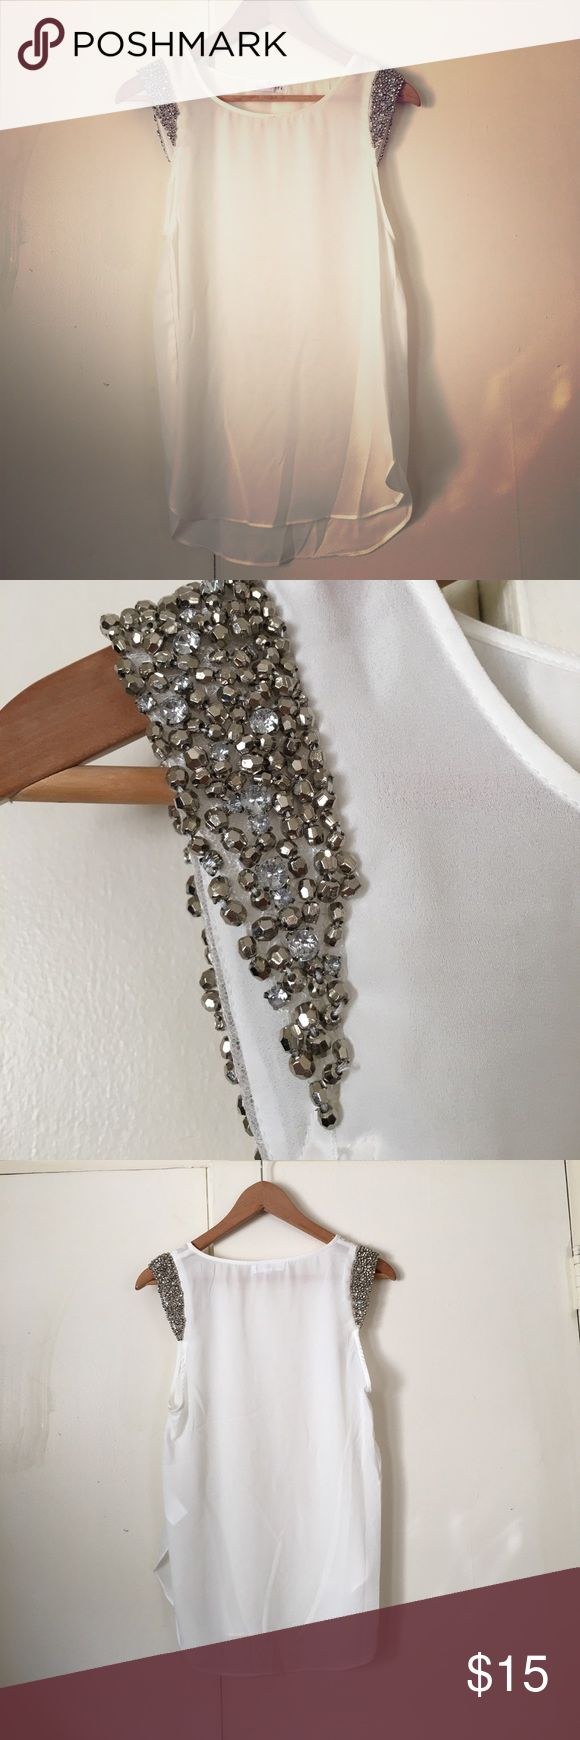 Socialite Embellished Sleeve White Blouse - Small So cute!! Semi-sheer white Socialite top in size small. No stretch in the material. Sleeves are heavily embellished and so sparkly. Curved hem at bottom (front and back). This top can be dressed up or down, but it will definitely be the star of the outfit! Pair it with black skinny jeans and booties or shorts with gladiator sandals! Socialite Tops Blouses